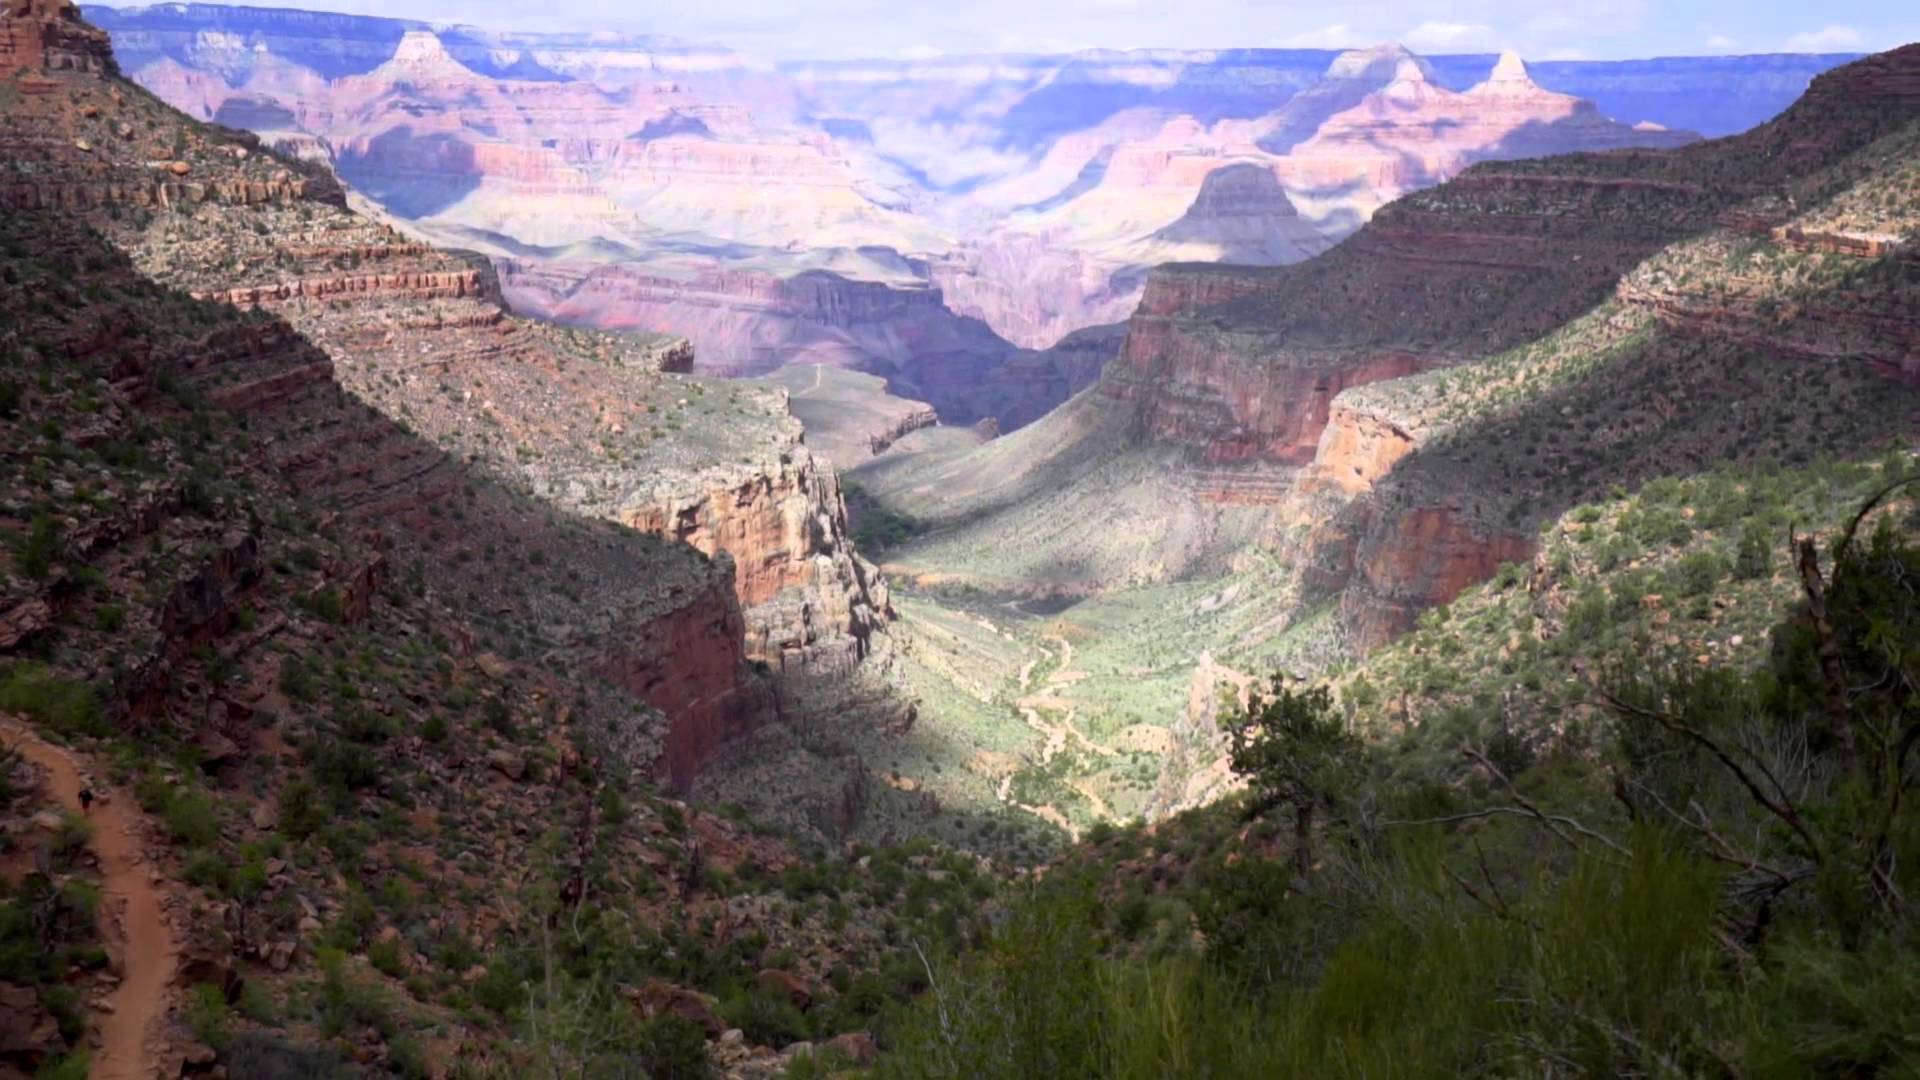 Paralyzed Man Hikes the Grand Canyon With Sons and Grandchildren